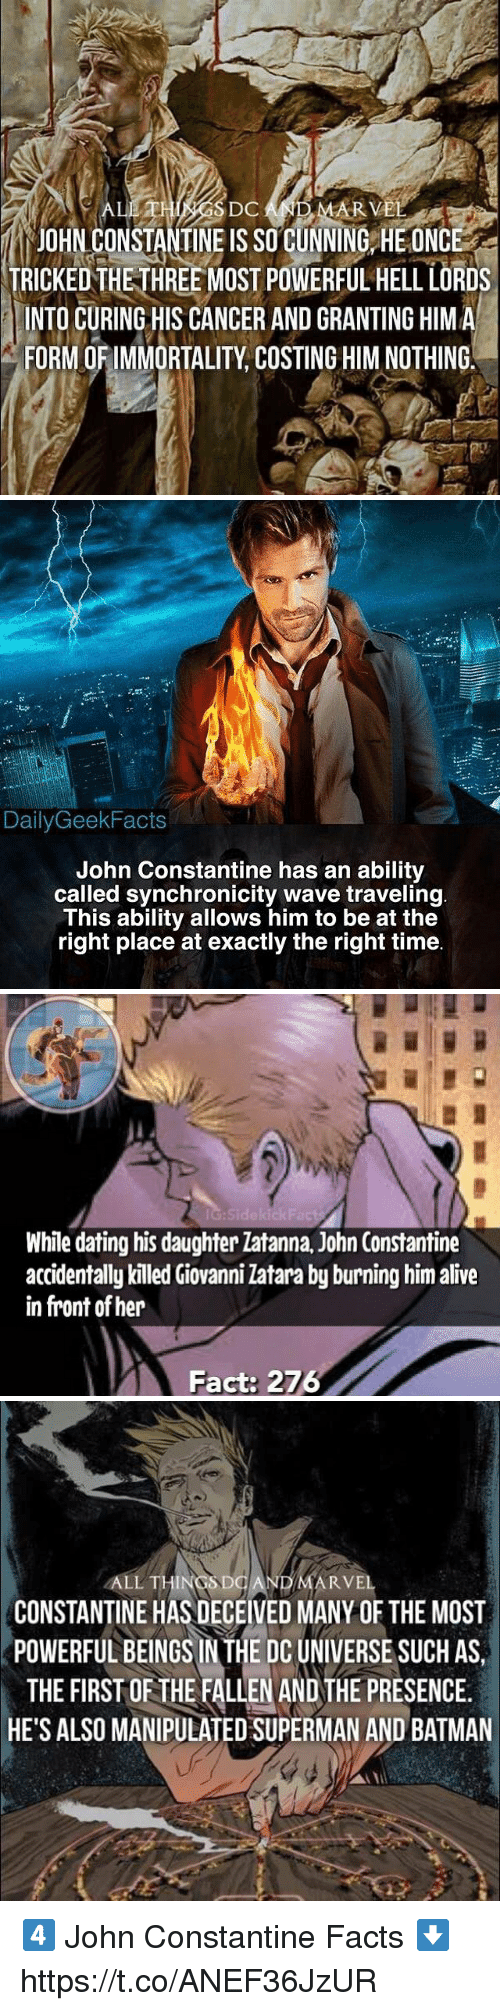 john constantine: DC  AR V  JOHN CONSTANTINE IS SO CUNNING HE ONCE  TRICKEDTHE-THREE MOST POWERFUL HELL LORDS  INTO CURING HIS CANCER AND GRANTING HIMA  FORM OF IMMORTALITY, COSTING HIM NOTHING.   DailyGeekFacts  John Constantine has an ability  called synchronicity wave traveling  This ability allows him to be at the  right place at exactly the right time   Sidekick  While dating his daughter latanna, John Constantine  accidentally killed Giovanni Zatara by burning him alive  in front of her  Fact: 276   ALL THINGSDO  ARVEL  CONSTANTINE HAS DECEIVED MANY OF THE MOST  POWERFUL BEINGS IN THE DC UNIVERSE SUCH AS  THE FIRST OF THE FALLEN AND THE PRESENCE.  HE'S ALSO MANIPULATED SUPERMAN AND BATMAN 4️⃣ John Constantine Facts ⬇️ https://t.co/ANEF36JzUR